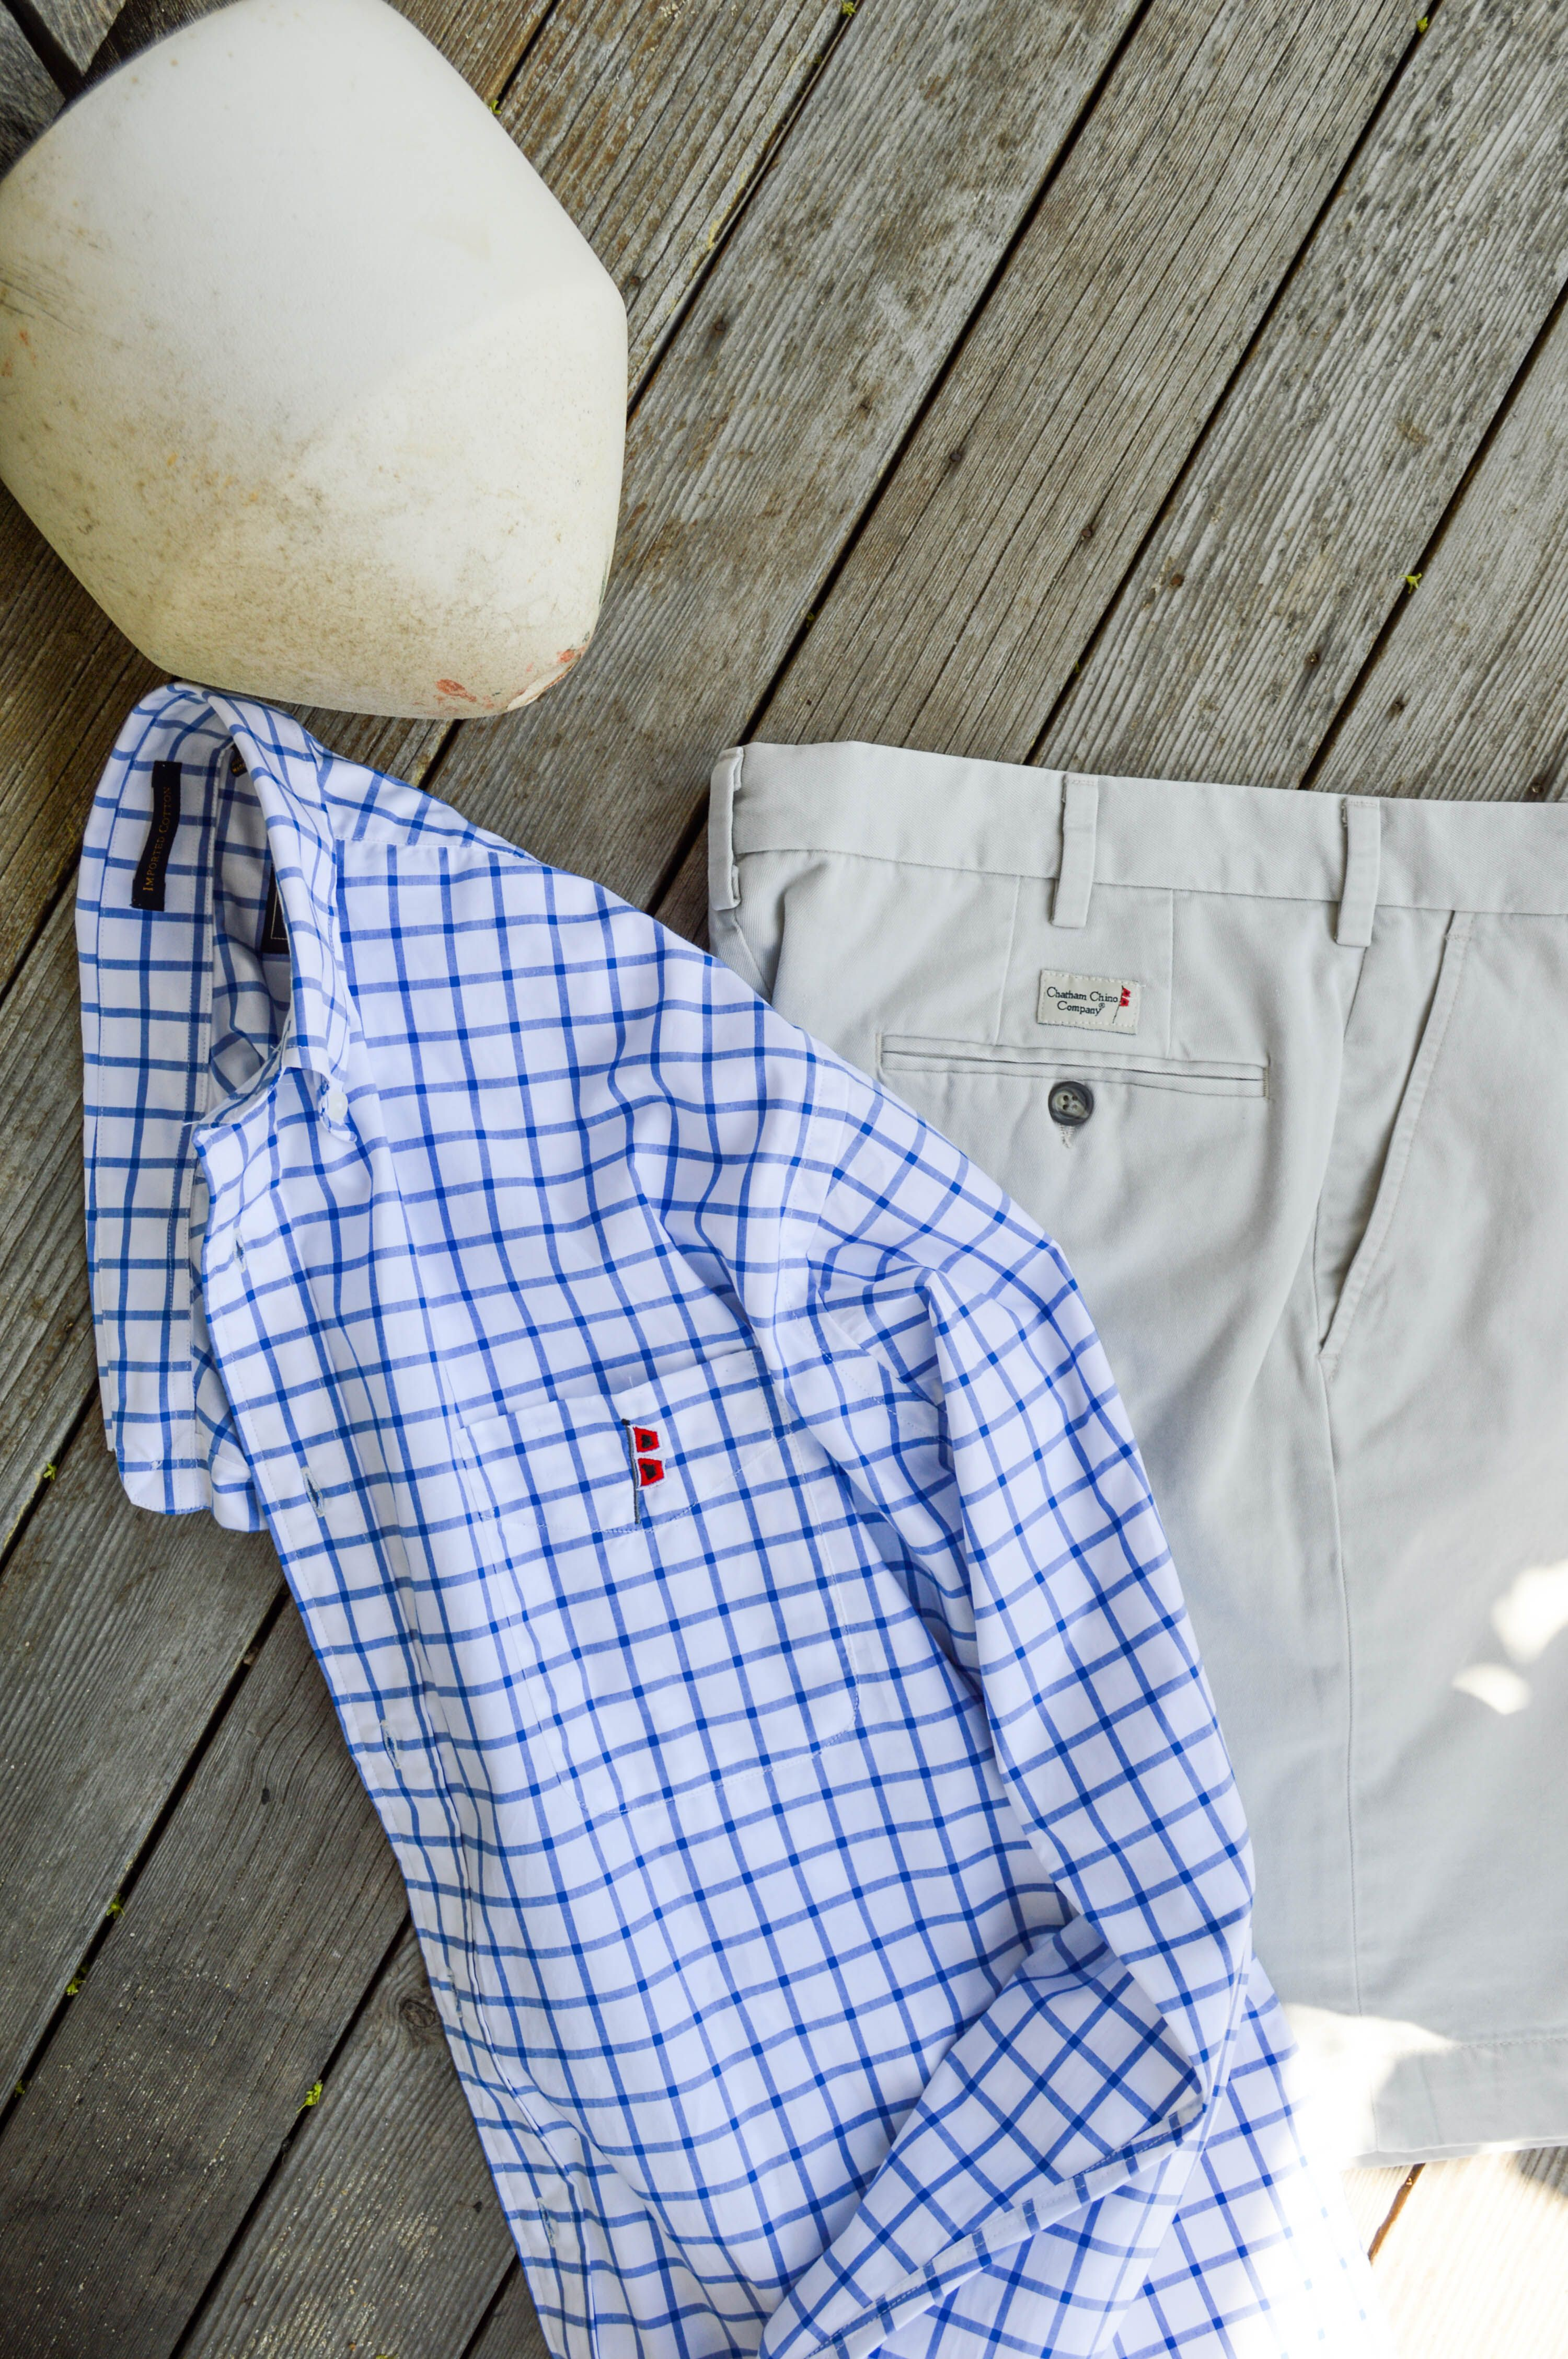 Shirt design new look - Chatham Chino Sport Shirt And Signature Stone Shorts Classic New England Preppy Men S Style